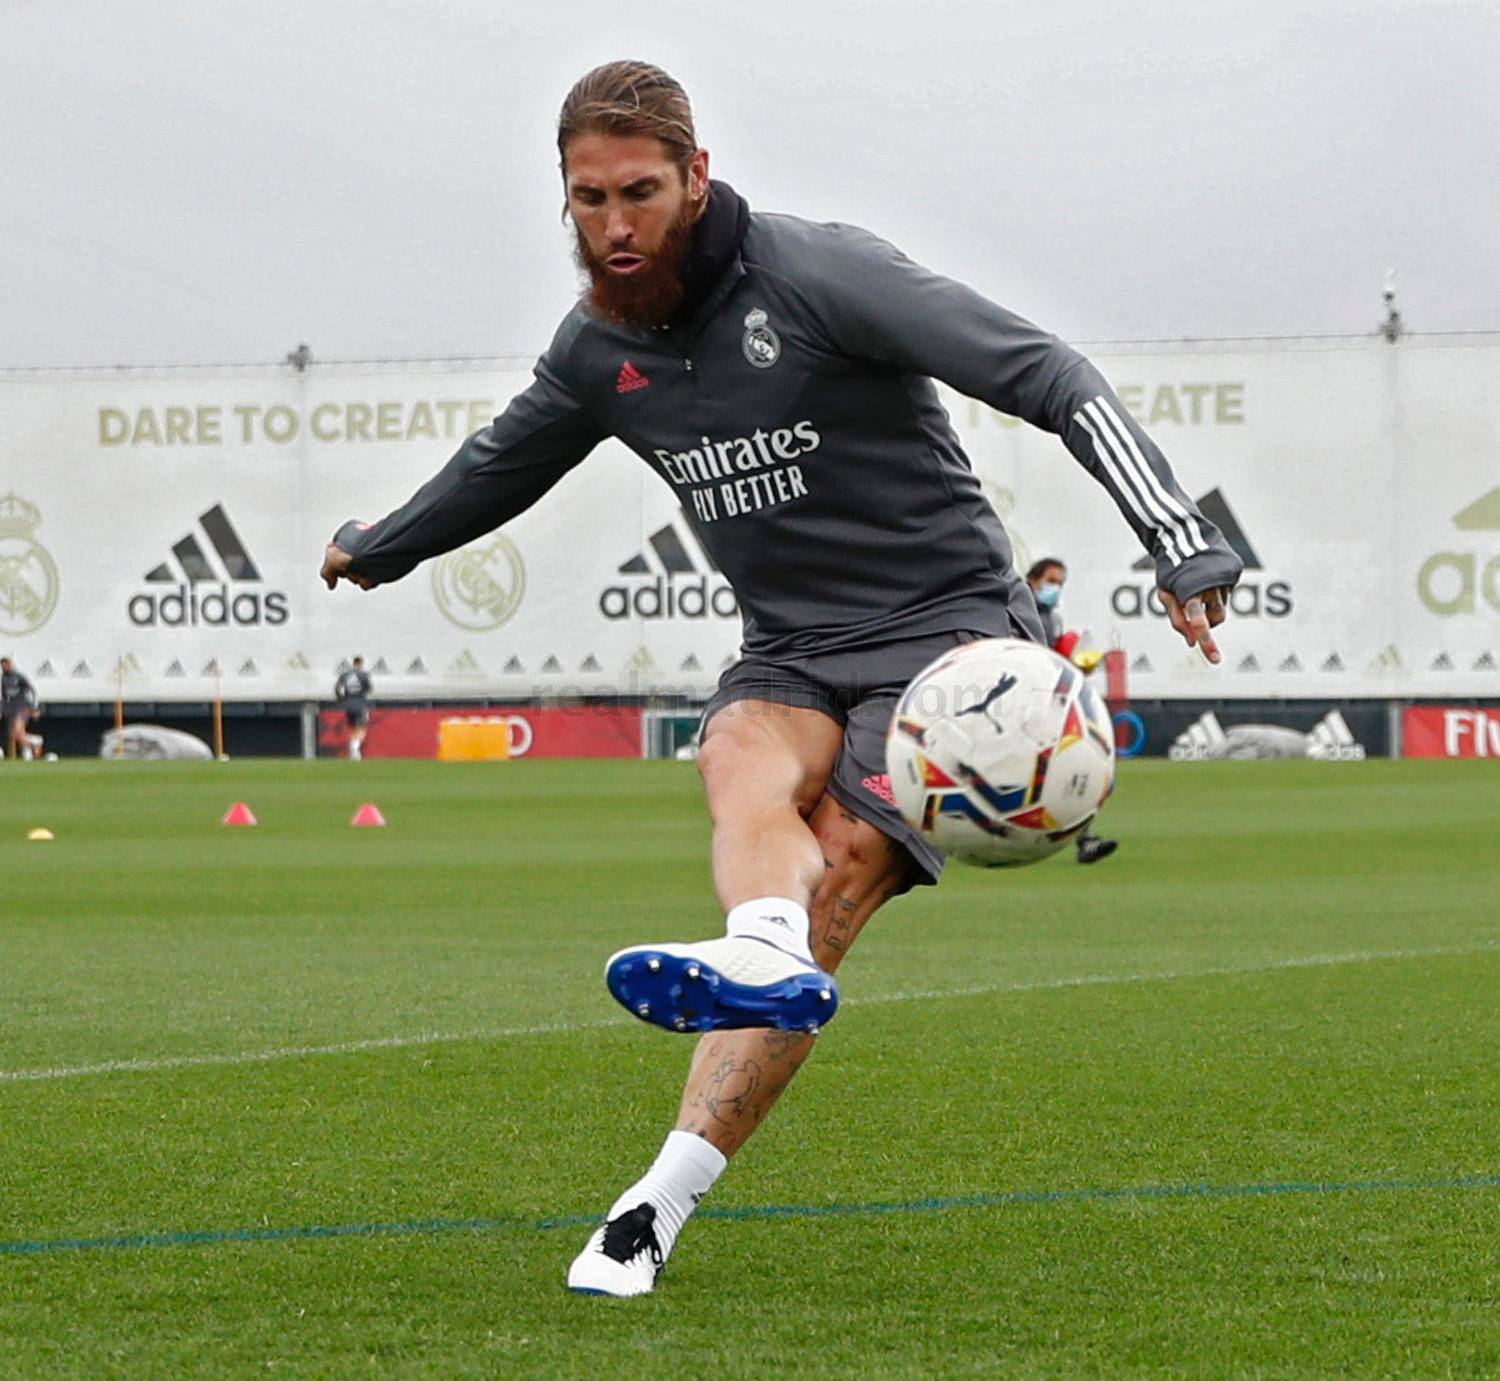 Real Madrid - Entrenamiento del Real Madrid  - 07-11-2020